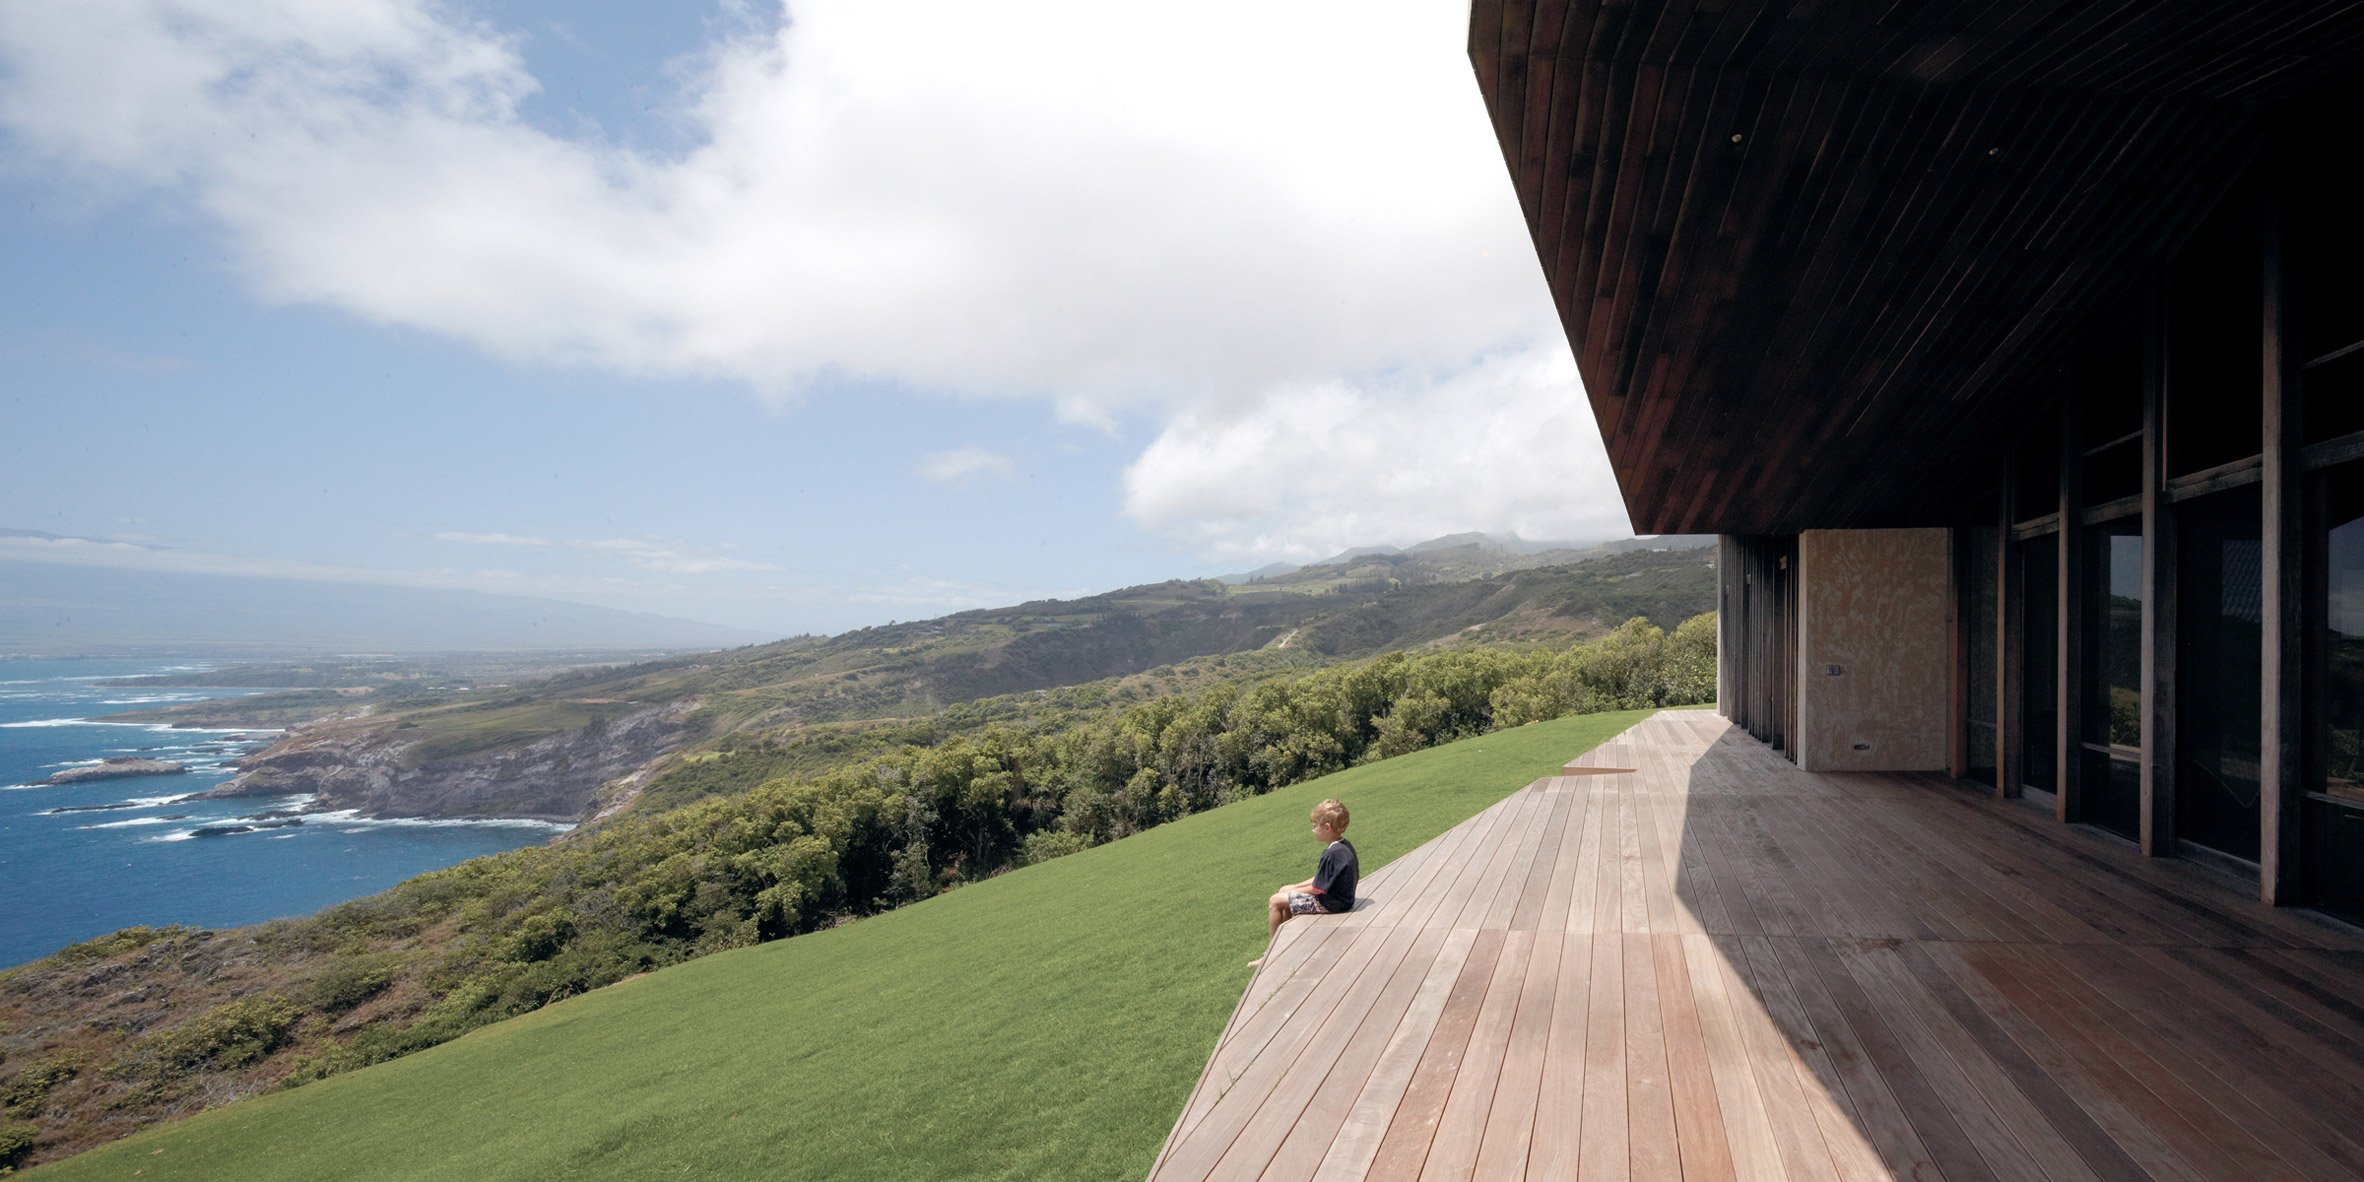 Clifftop House Maui by Dekleva Gregoric Architects